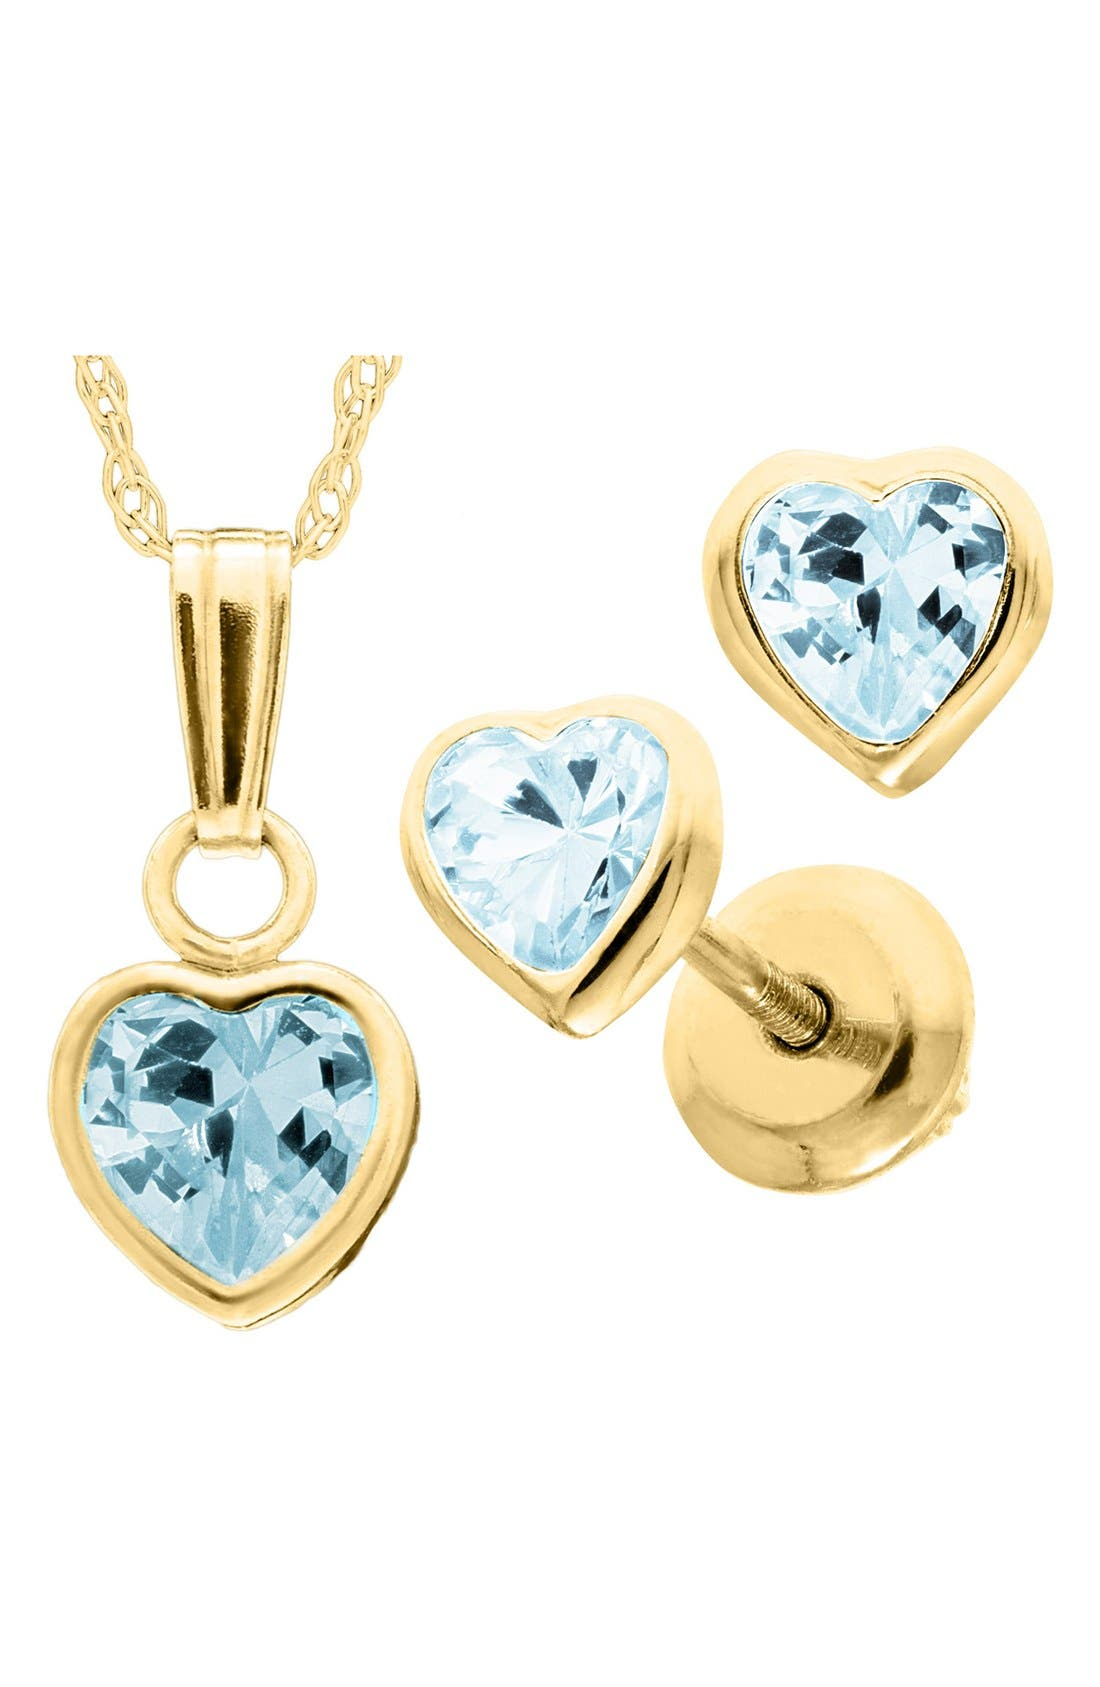 14k Gold Birthstone Necklace & Stud Earrings,                             Alternate thumbnail 3, color,                             DECEMBER